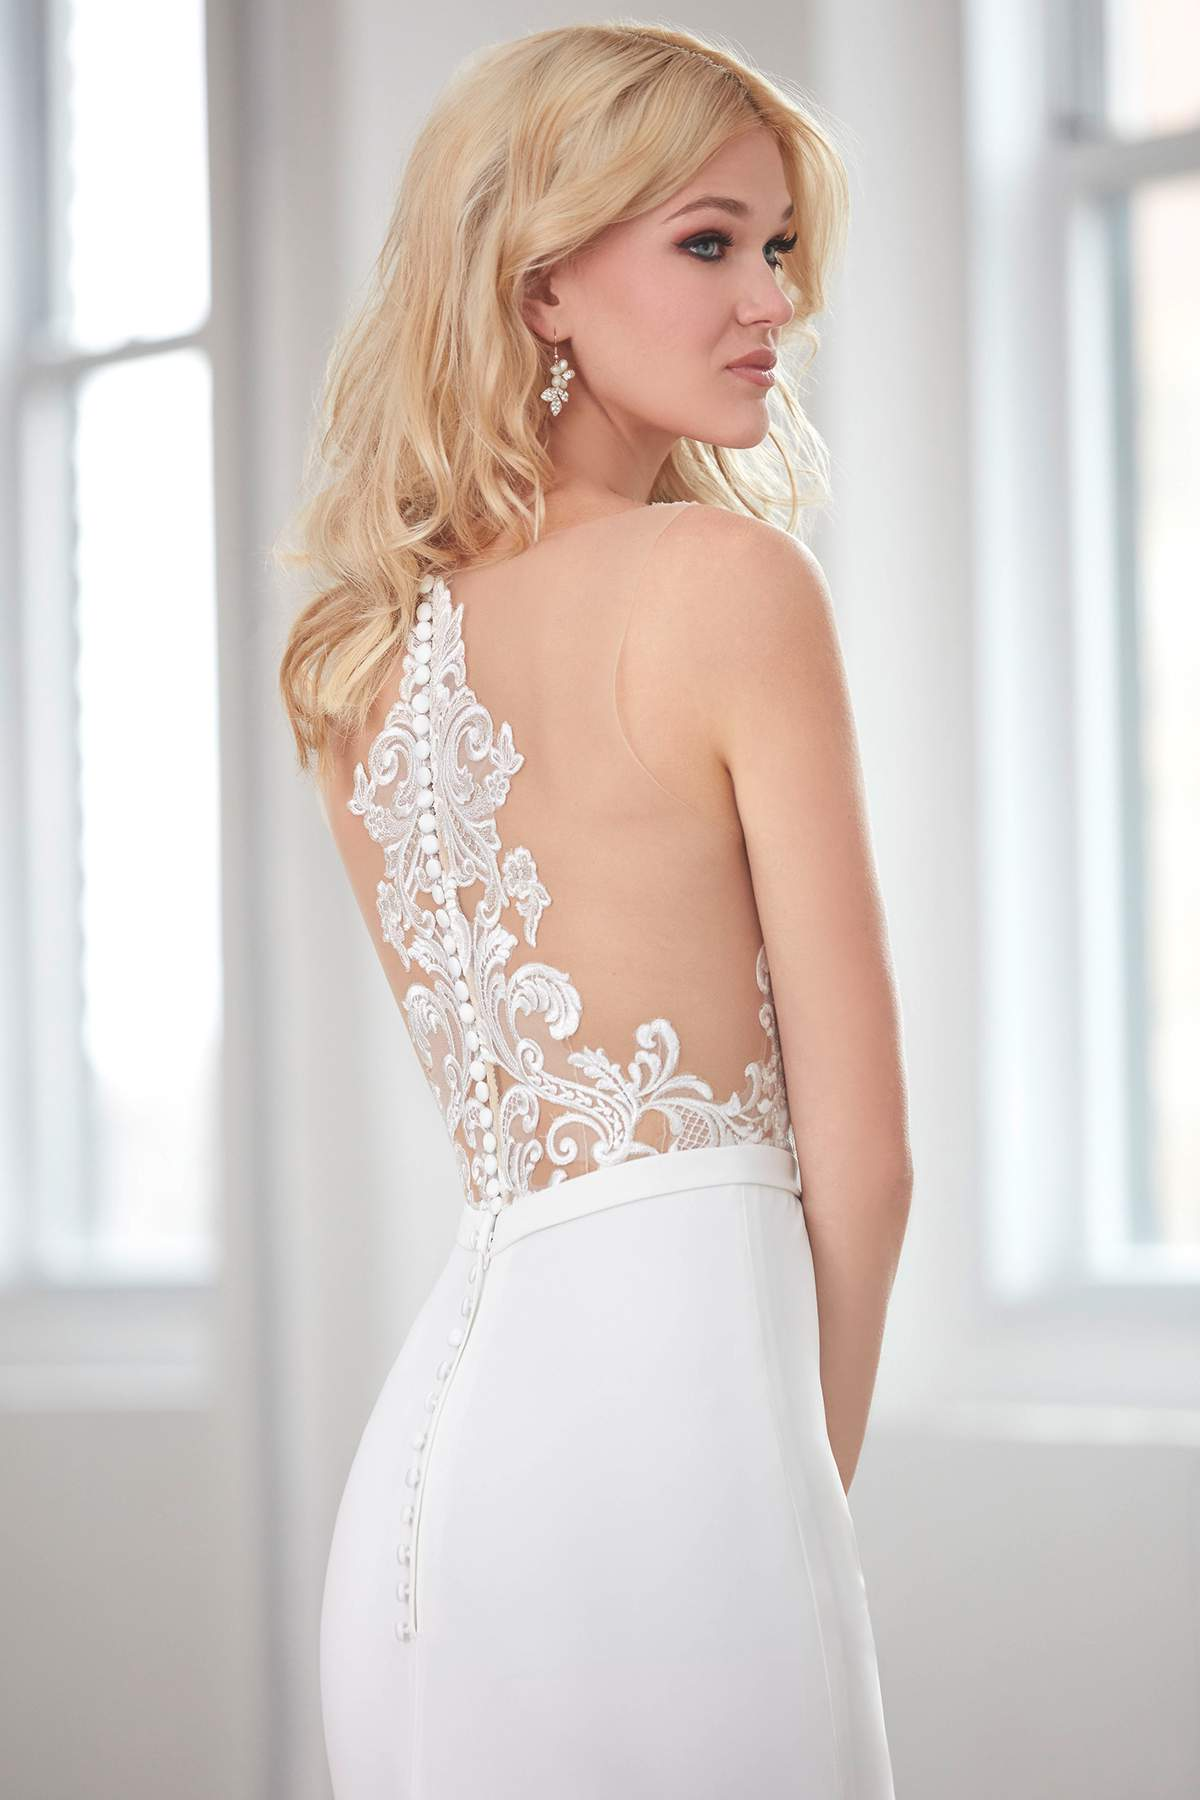 Style Mj355 By Madison James Find Your Dream Dress